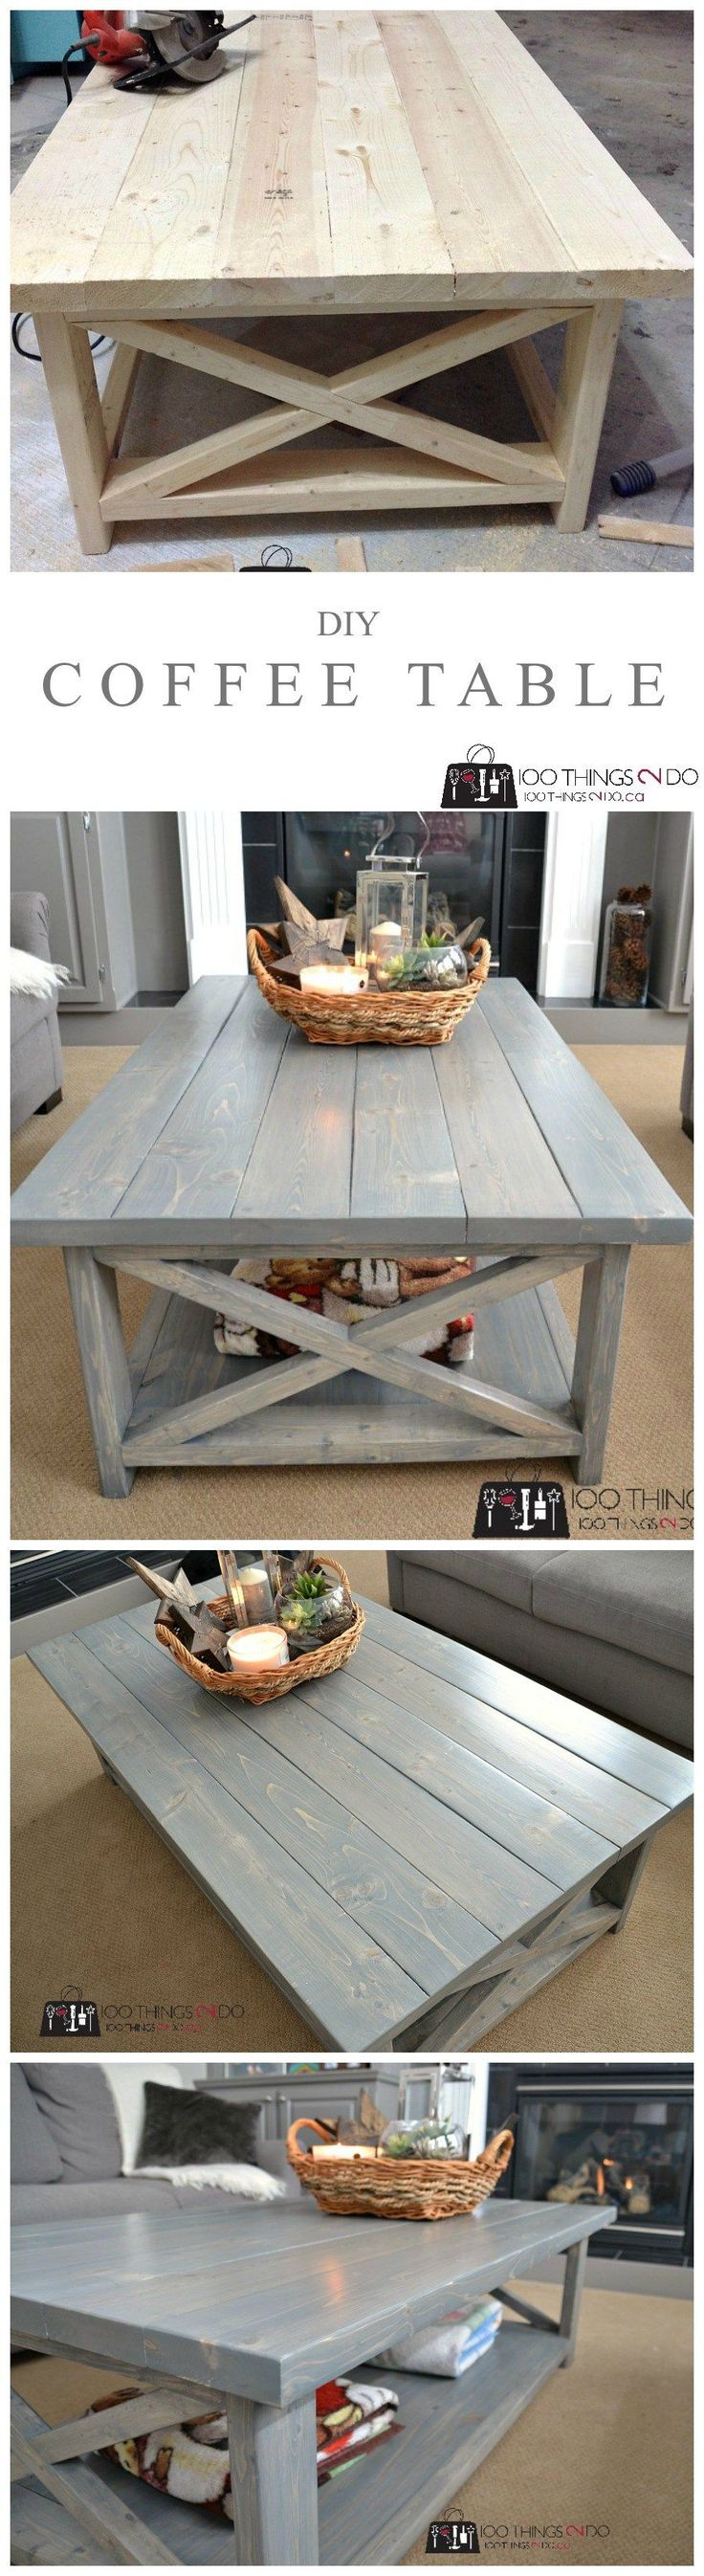 721 best IKEA HACKS & FURNITURE MAKEOVERS images on Pinterest